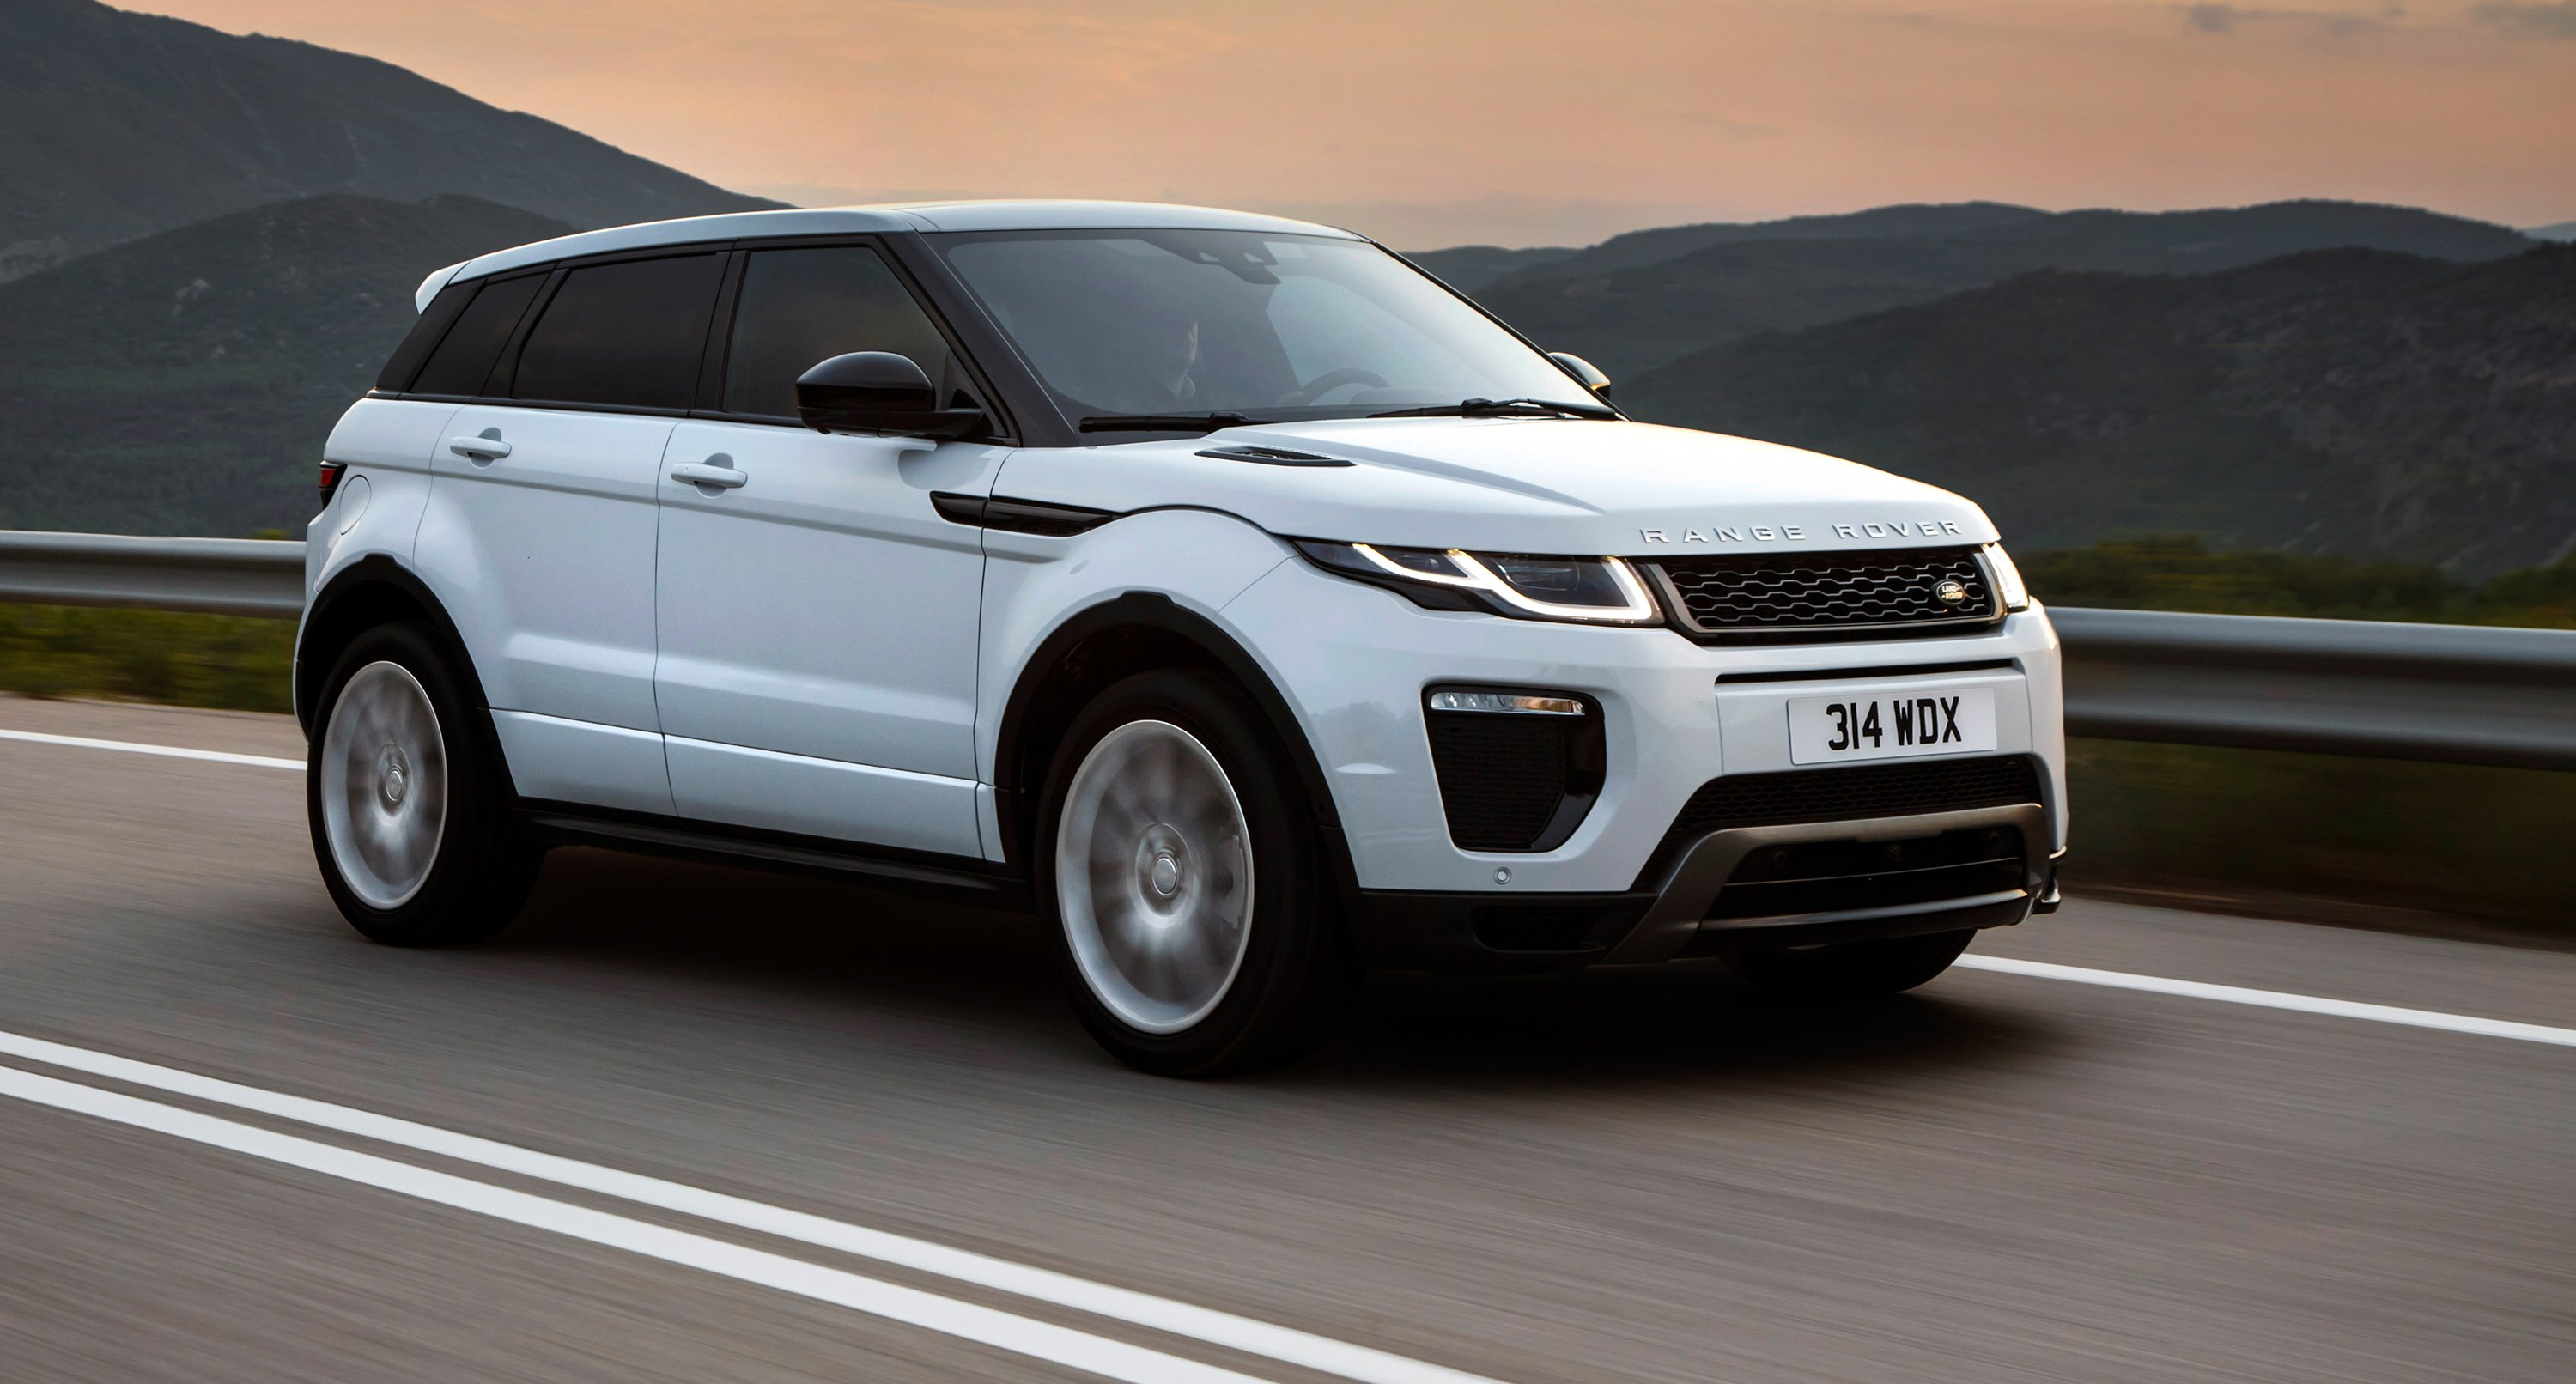 2018 range rover evoque land rover discovery sport ingenium petrol engines here soon update. Black Bedroom Furniture Sets. Home Design Ideas